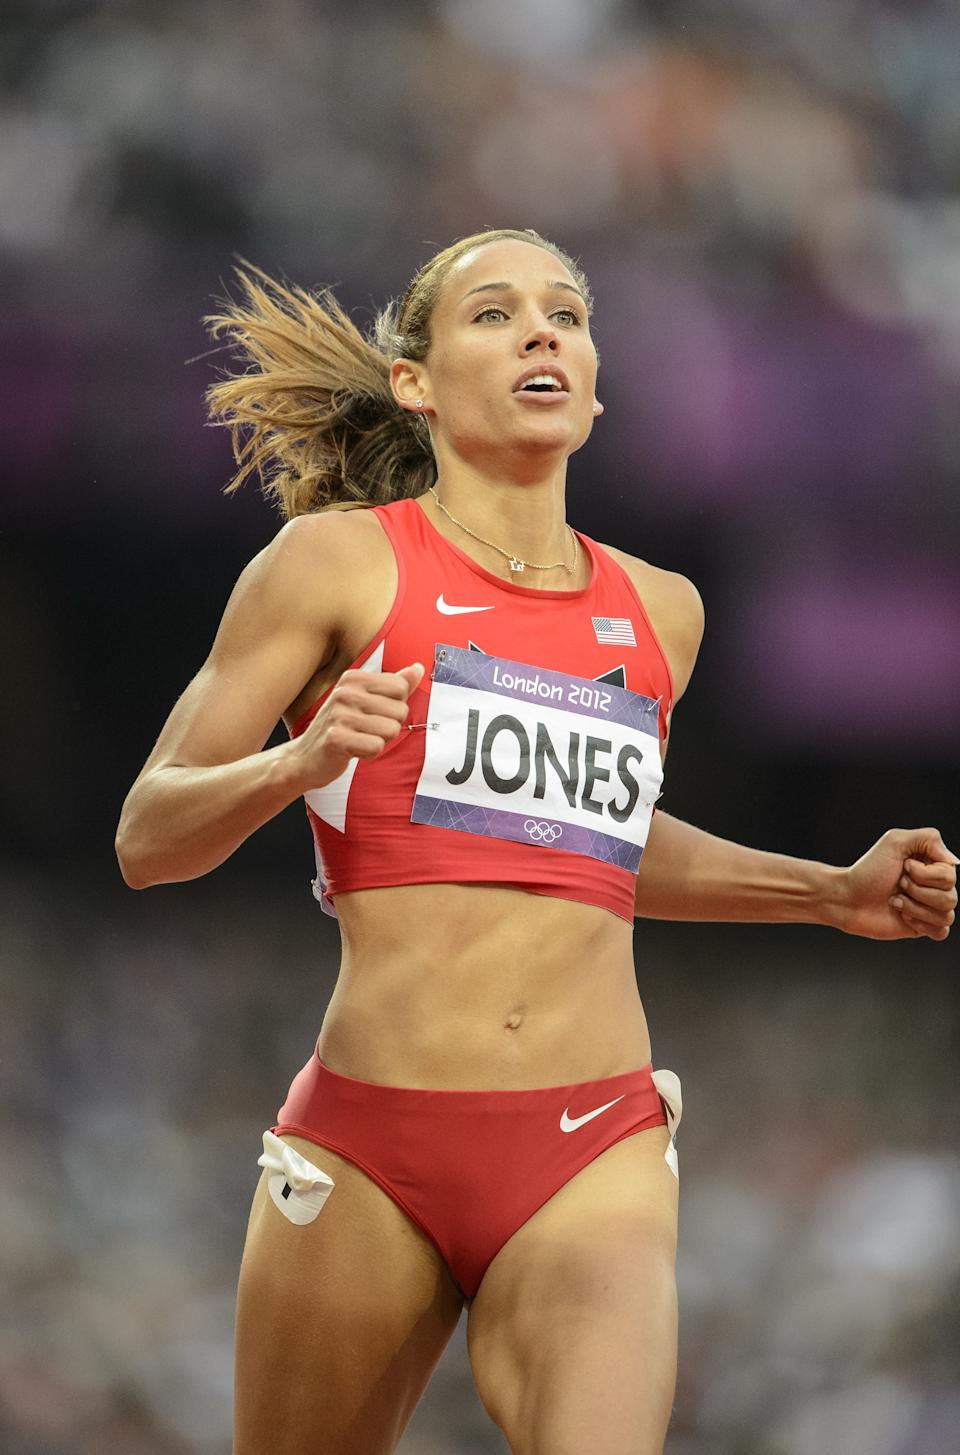 Lolo Jones (USA) Women's 100m hurdles, Athletics- Day 11: Athletics at the Olympic Stadium during the 2012 London Olympic Games. (Photo by Christopher Morris/Corbis via Getty Images)